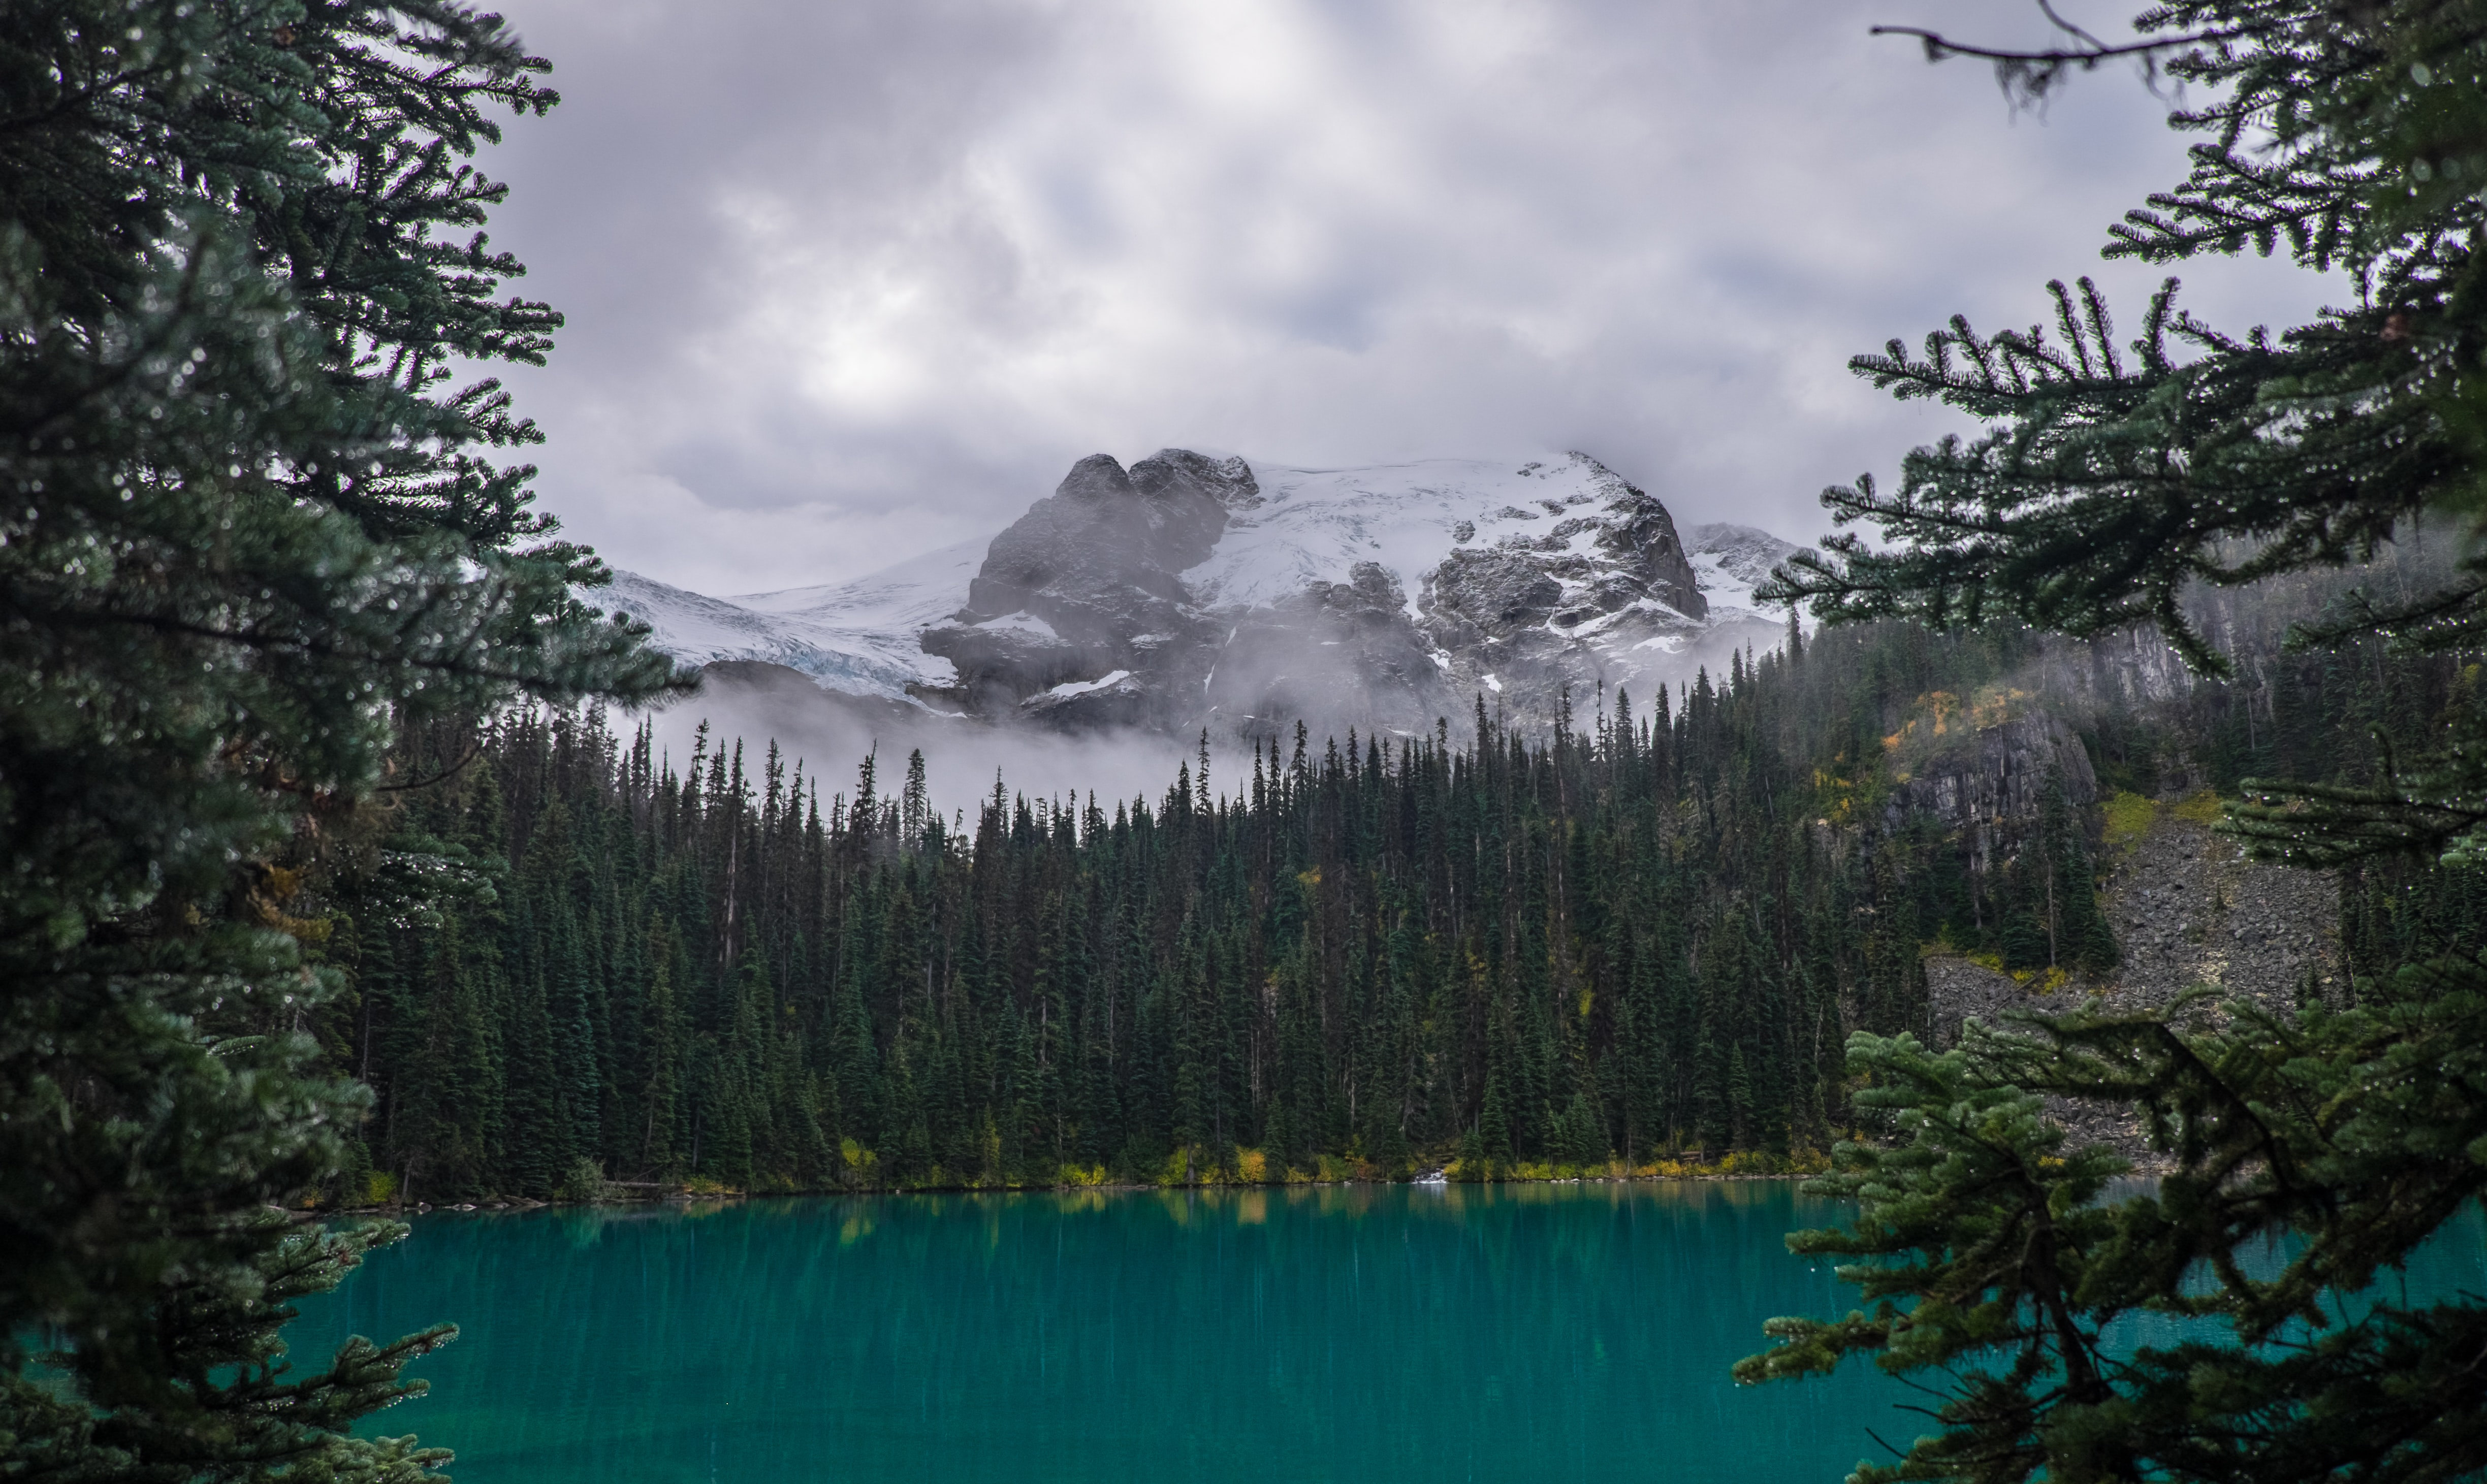 A hidden lake with forests surrounding it and snow covered mountain in the background with a cloudy sky in Joffre Lakes Trail.